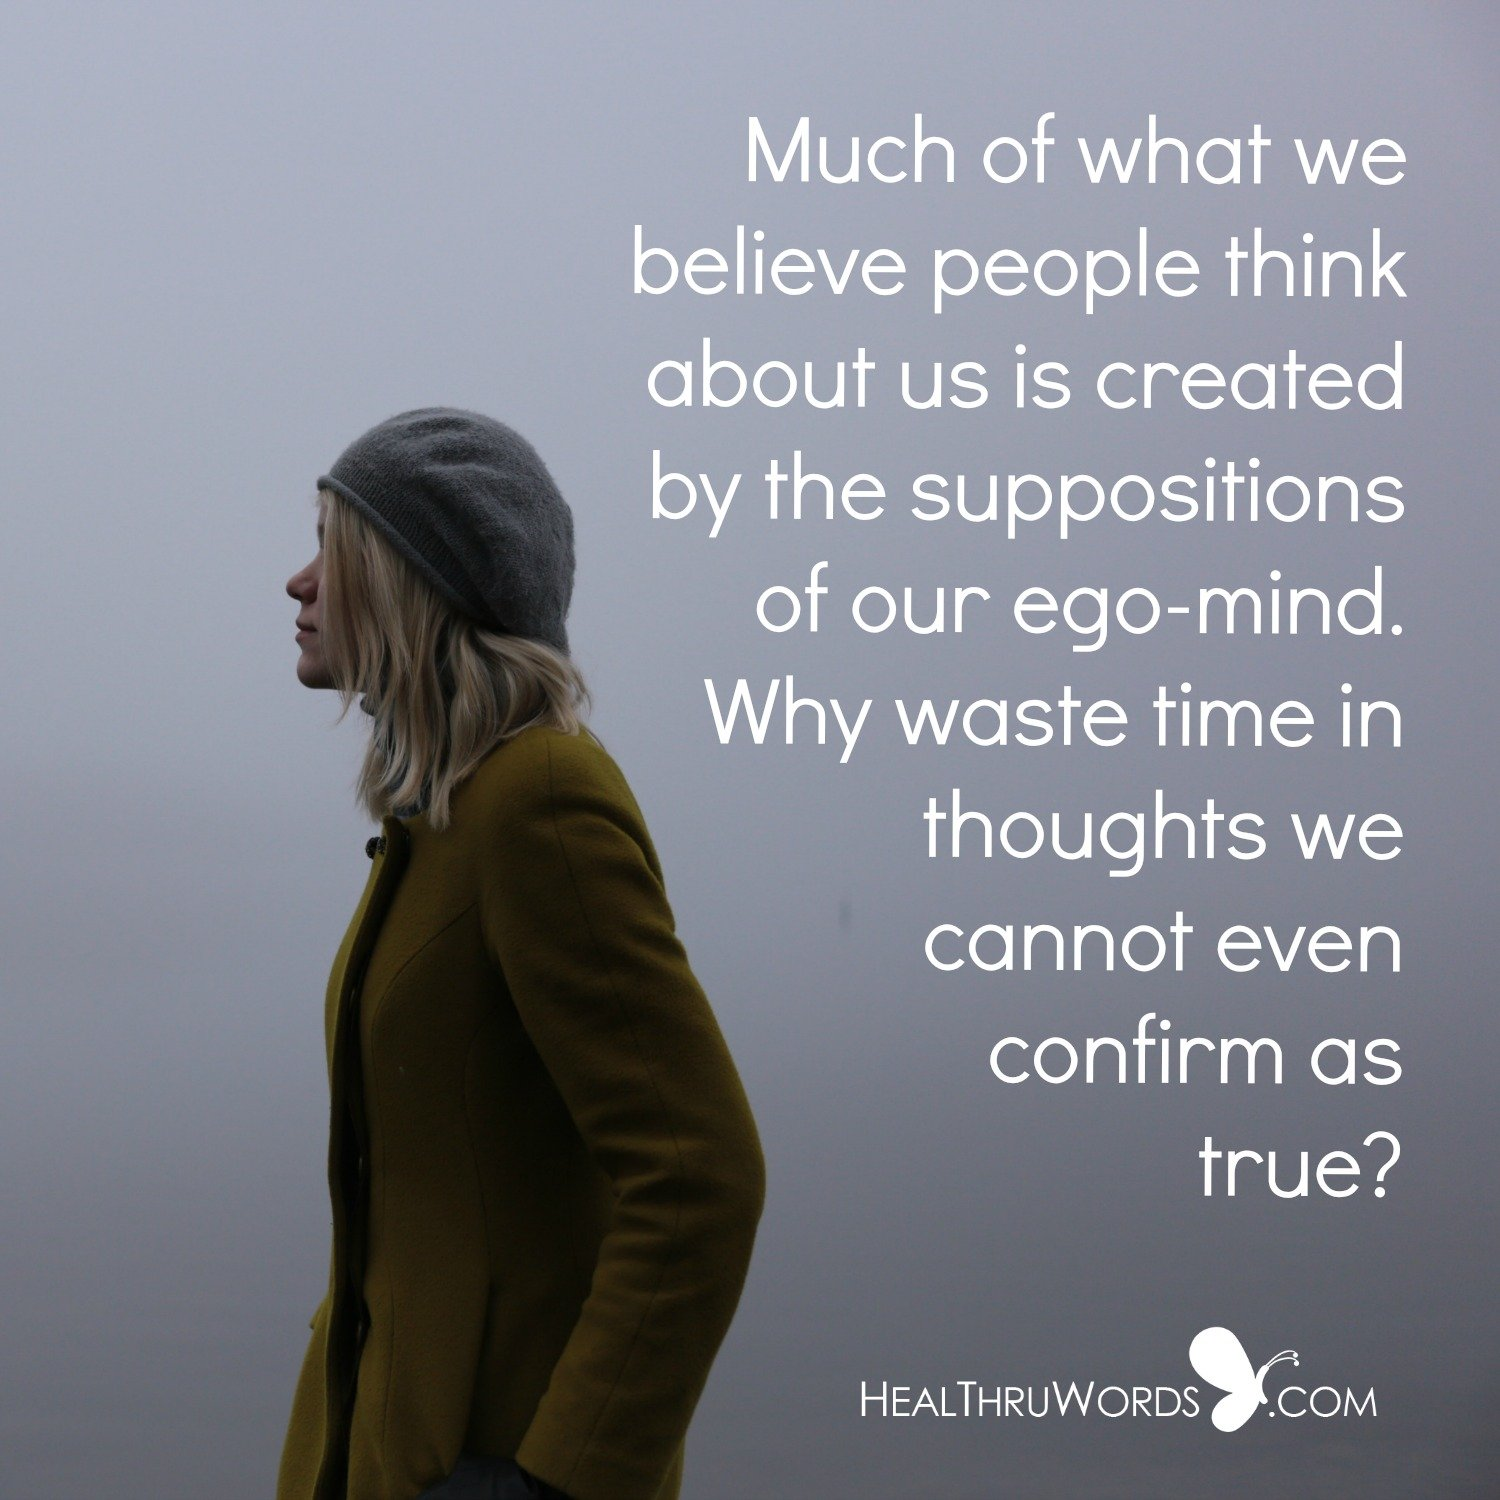 Inspirational Image: Egotistic Suppositions